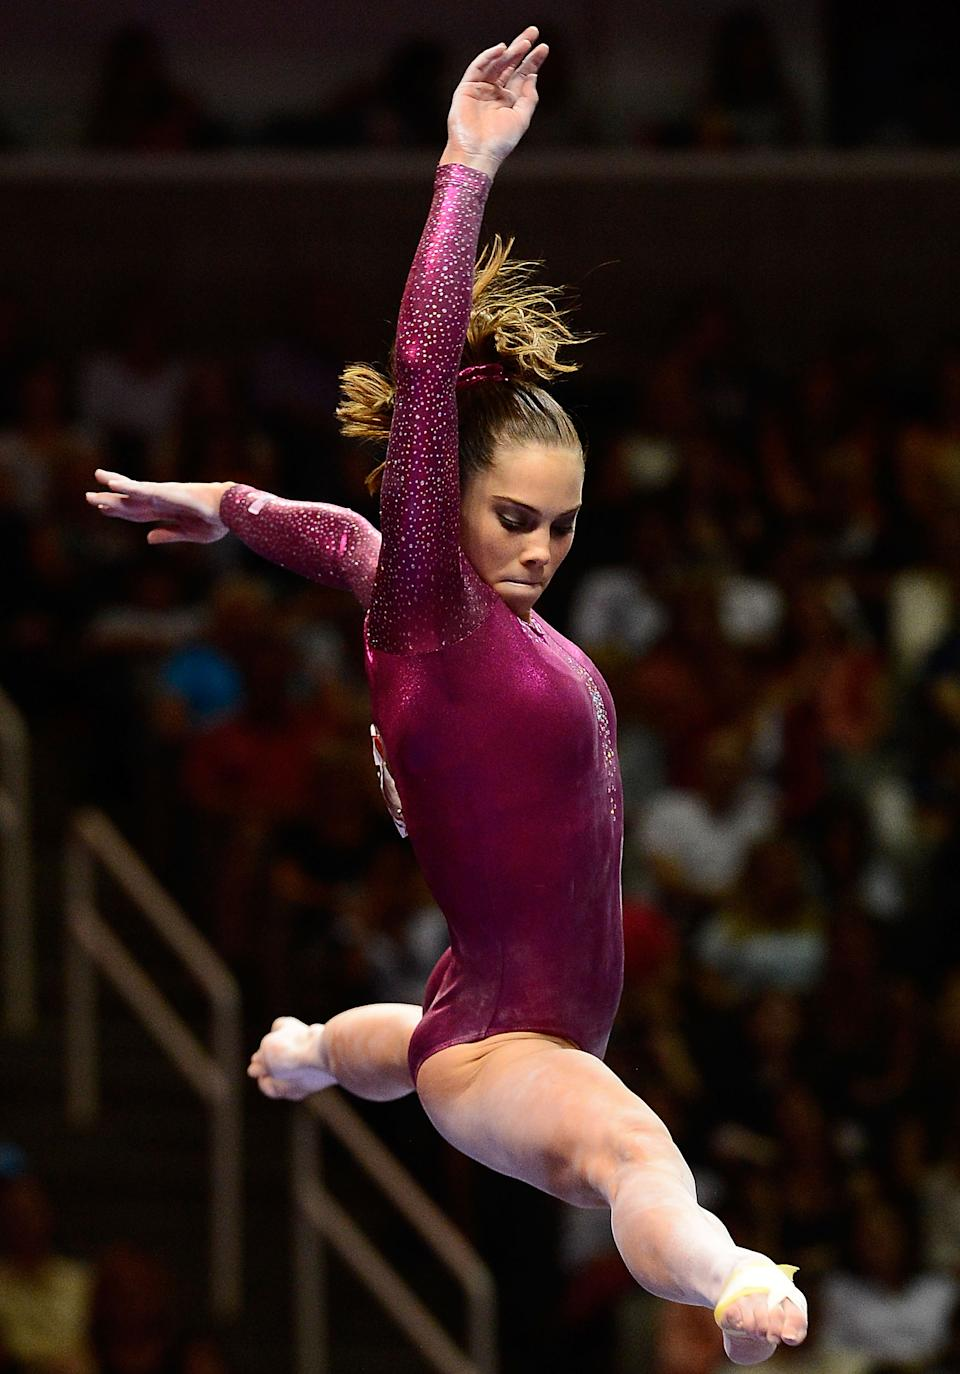 McKayla Maroney competes on the balance beam during day 4 of the 2012 U.S. Olympic Gymnastics Team Trials at HP Pavilion on July 1, 2012 in San Jose, California. (Ronald Martinez/Getty Images)